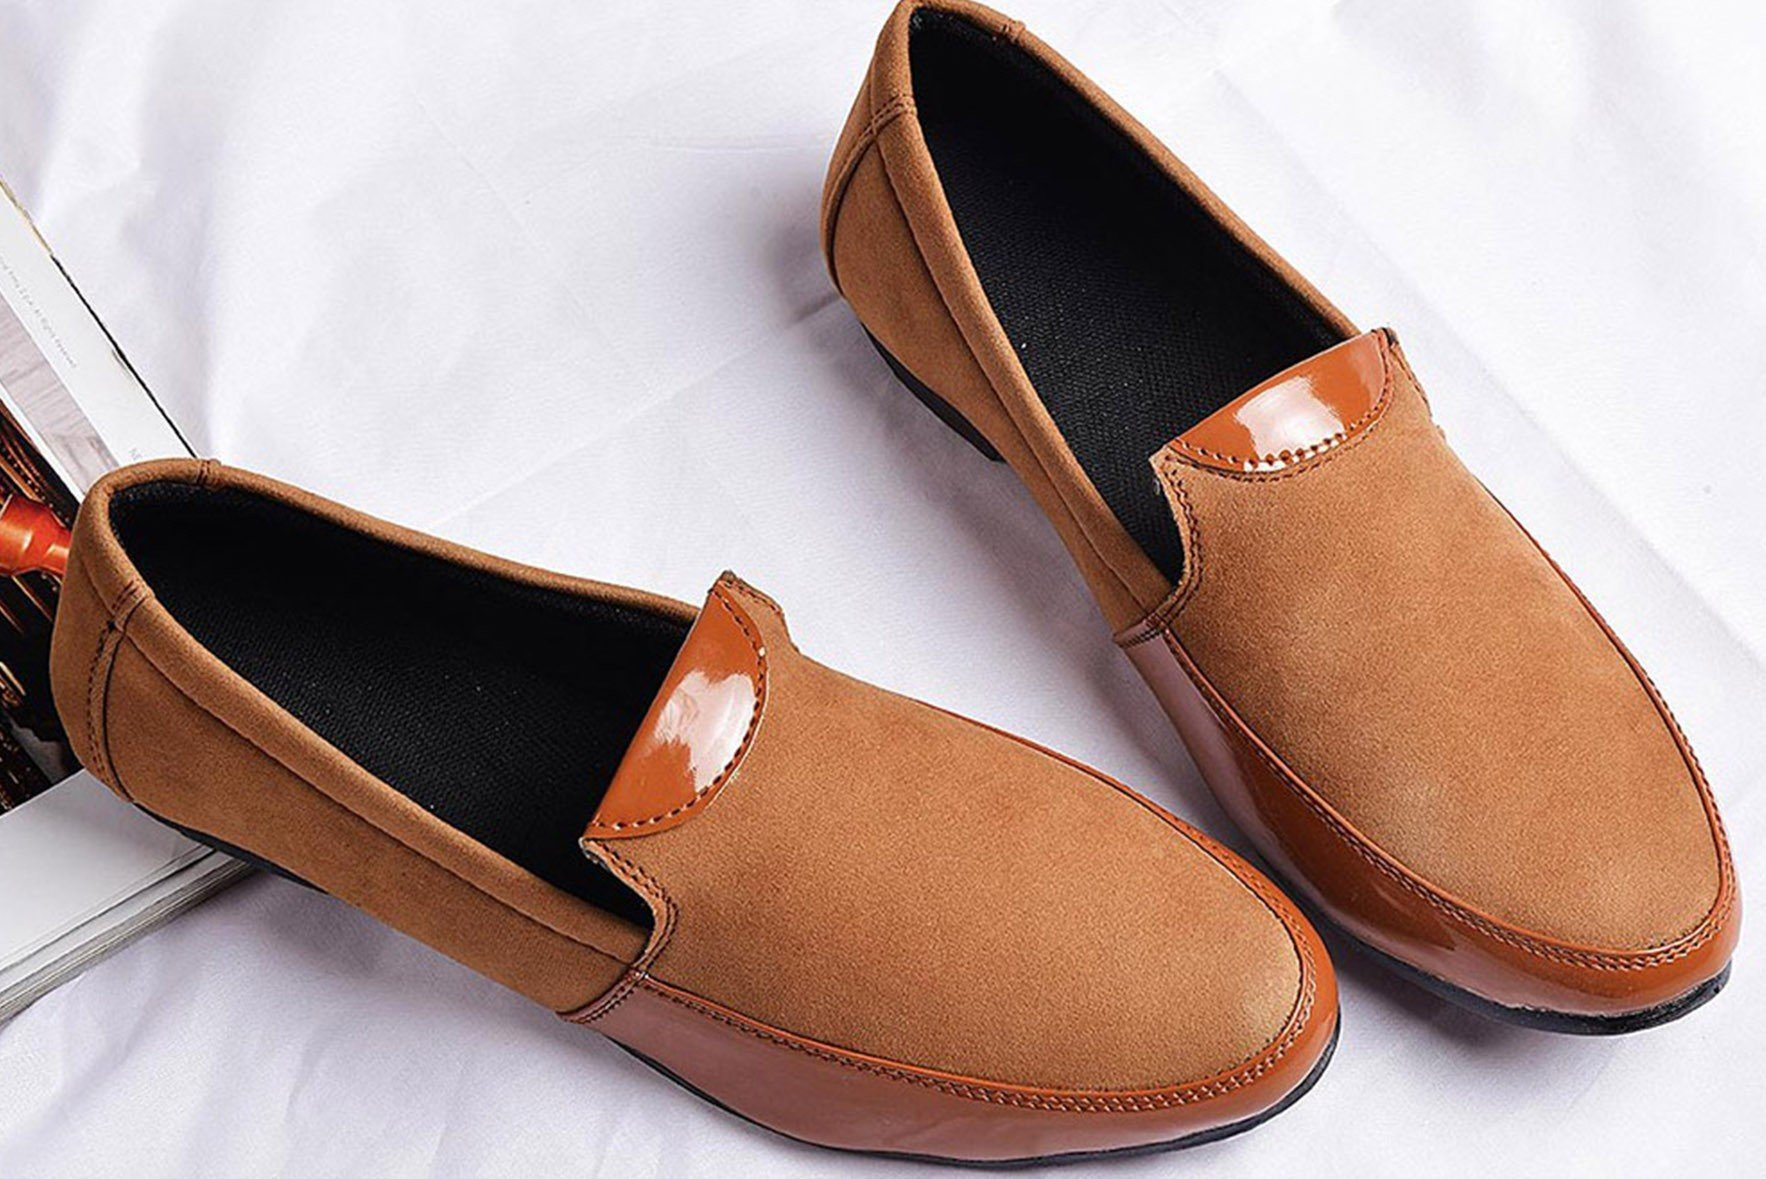 Mens - Brown suede loafers